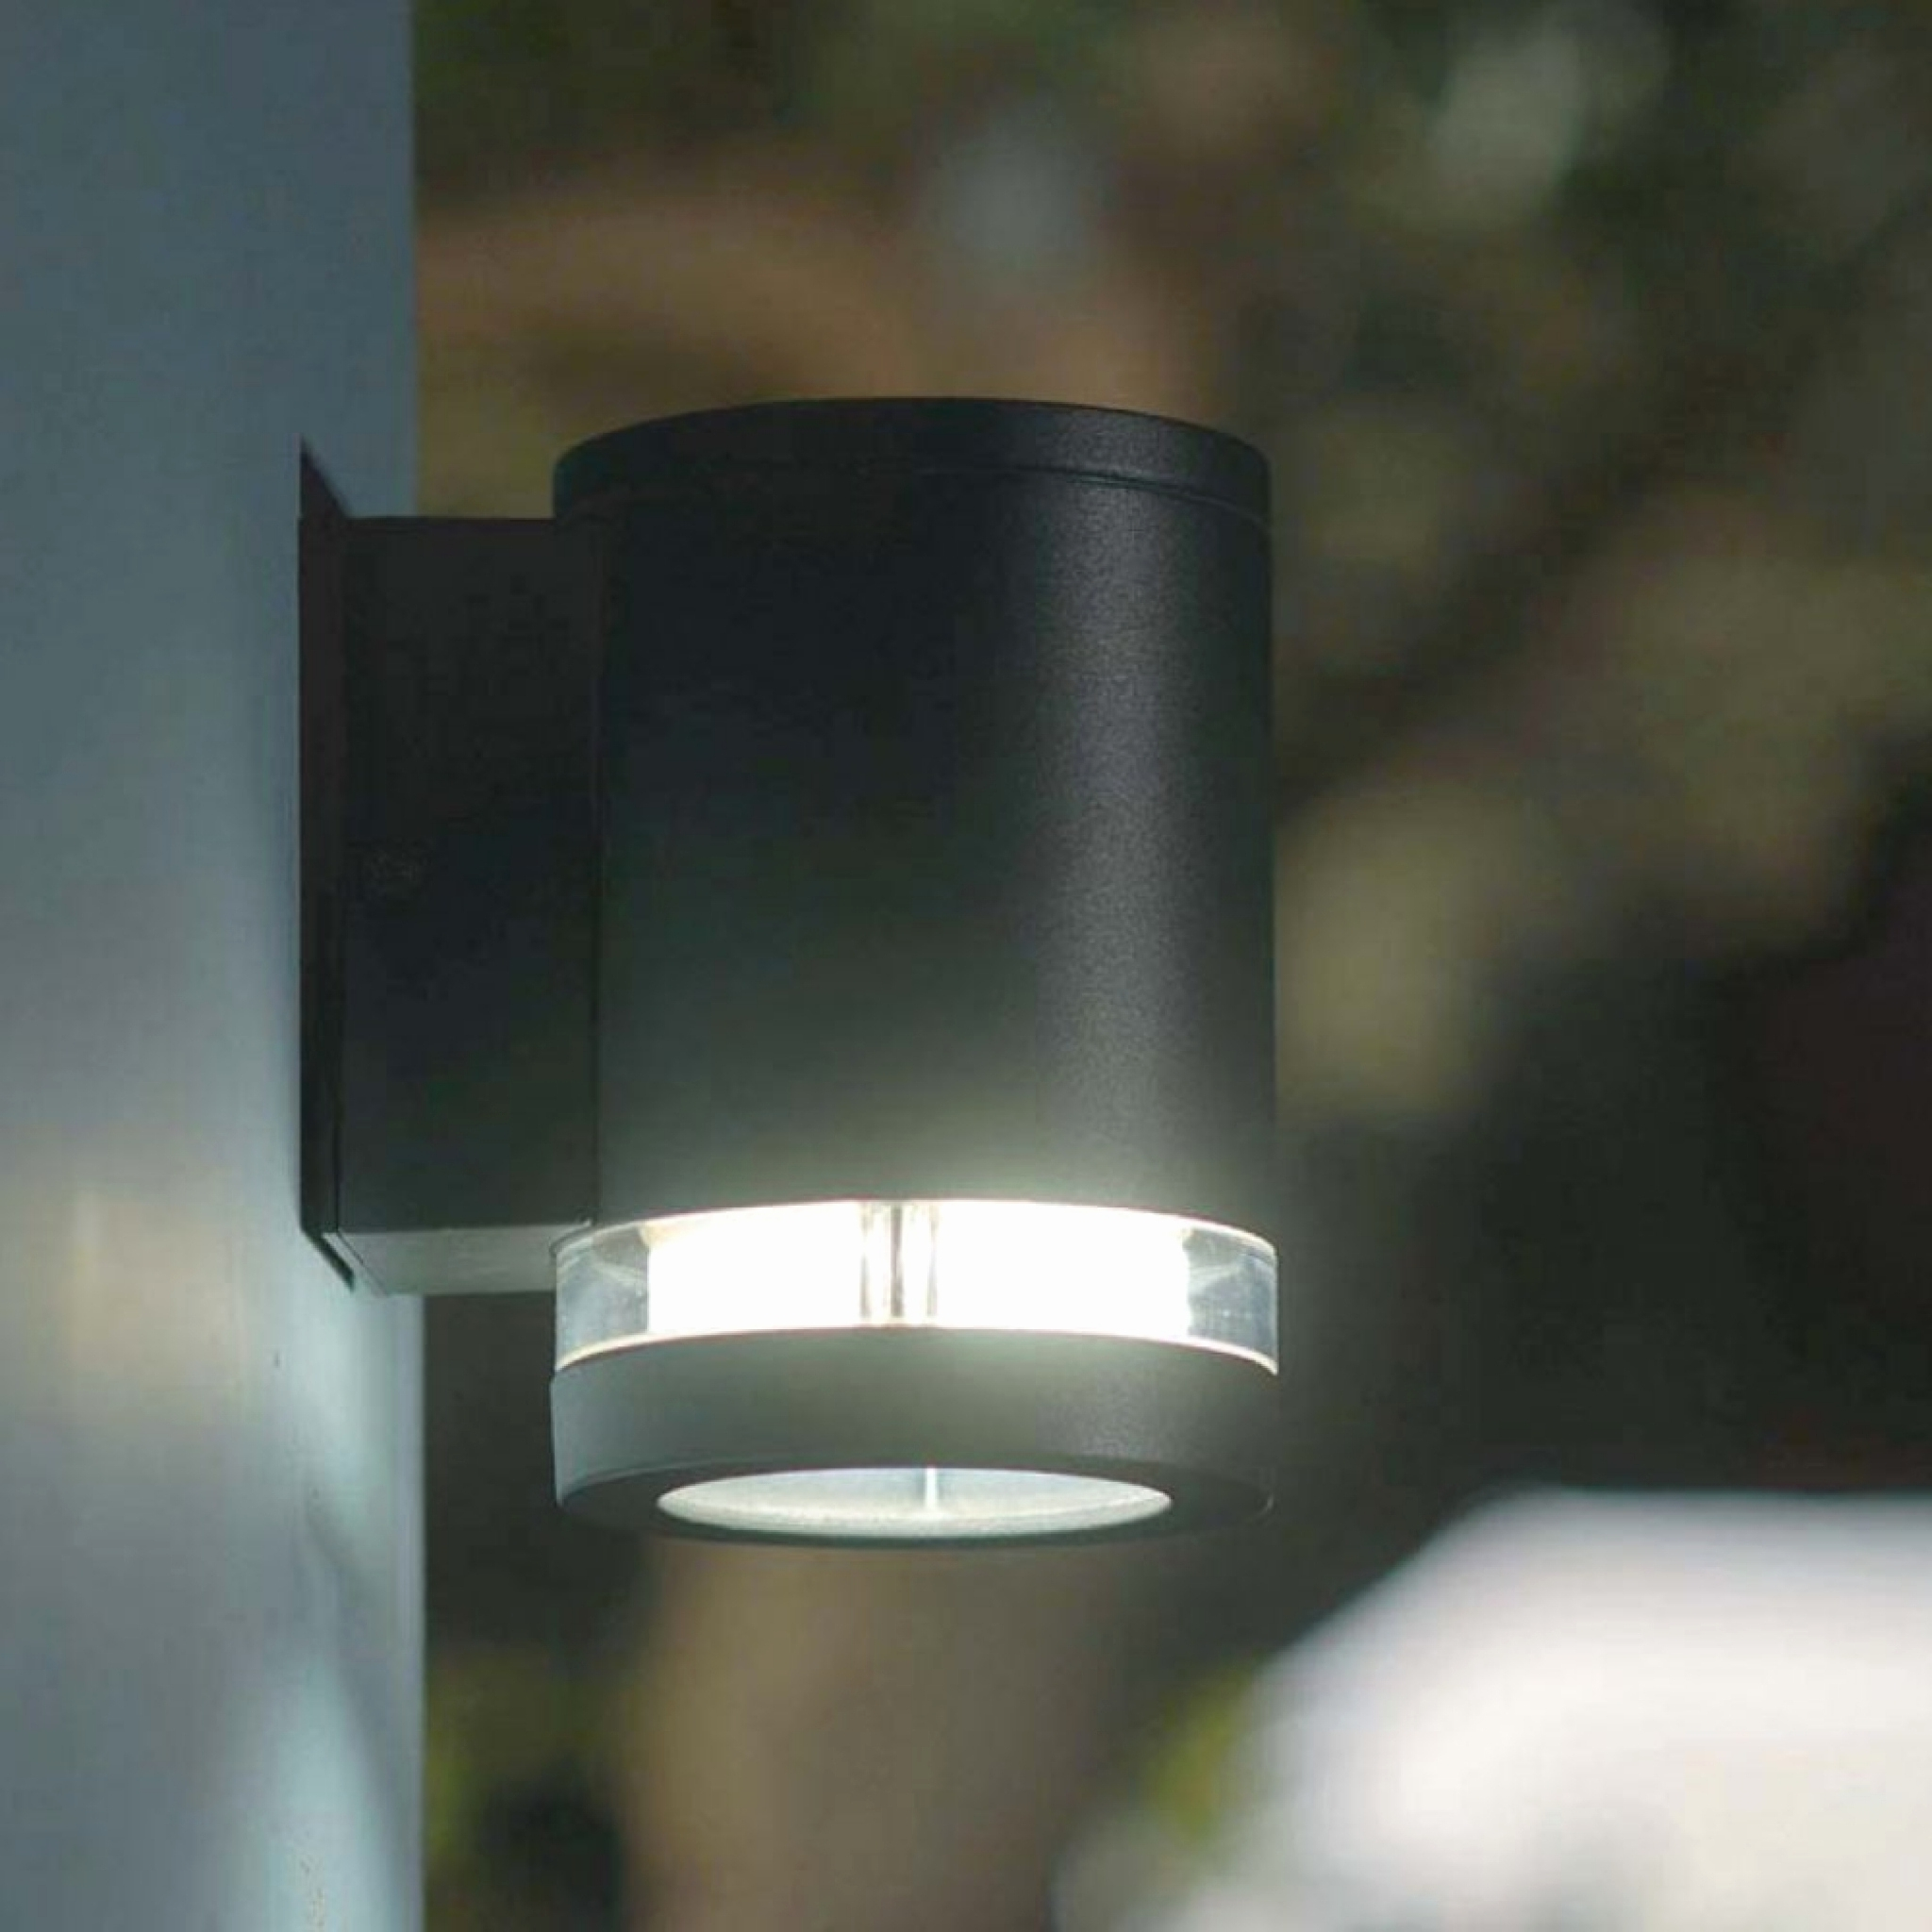 Modern Home Interior Intended For Well Known Outdoor Solar Wall Lights (View 3 of 20)